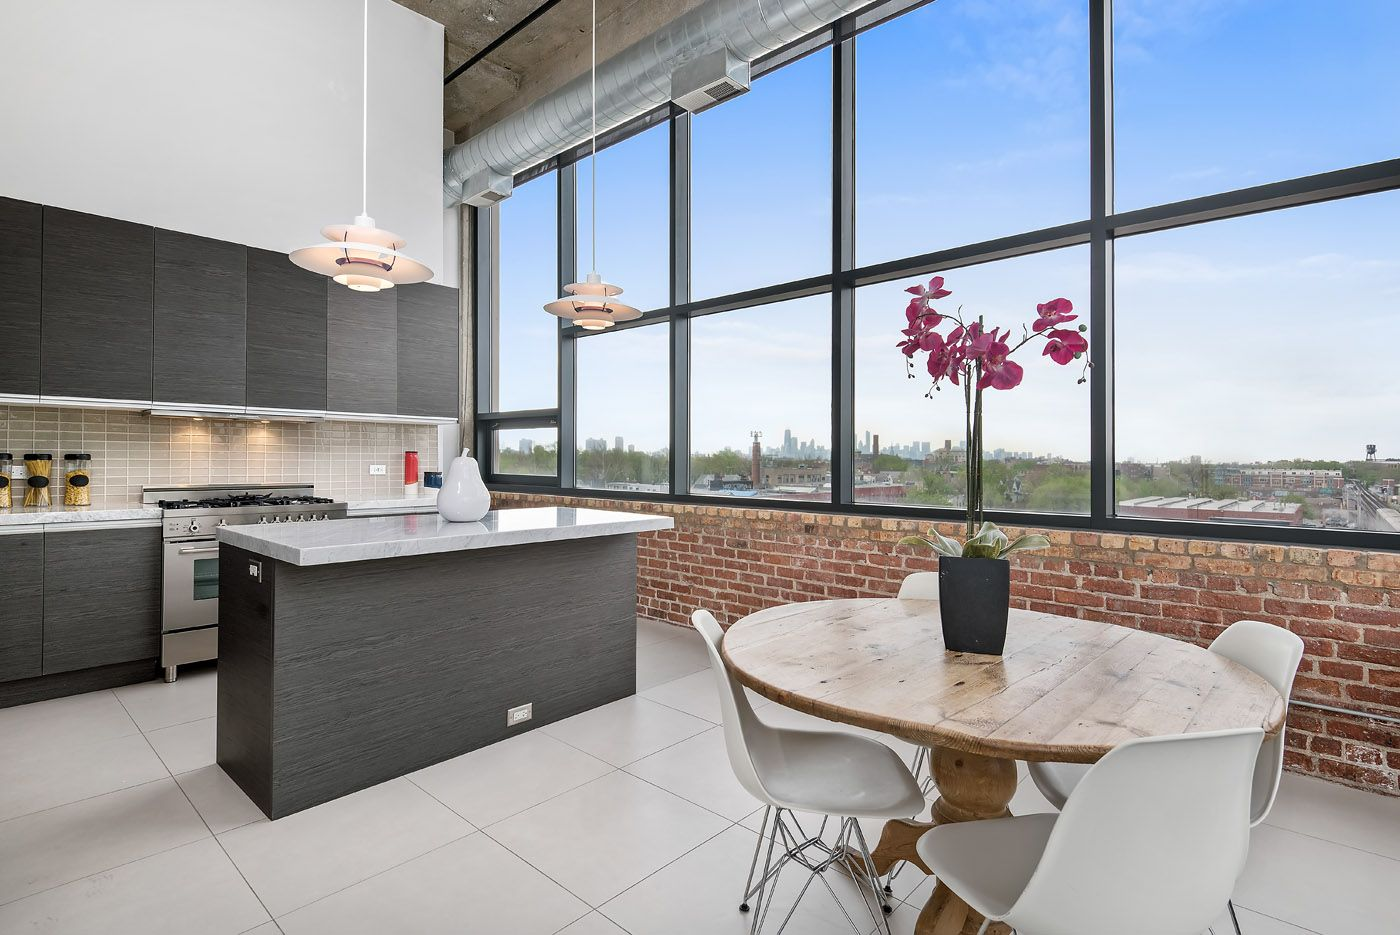 North Center 2 Bedroom Unit Offers Quiet Residential Living And Amazing Cityscape Views Un White Quartz Countertop Floor To Ceiling Windows Gorgeous Kitchens